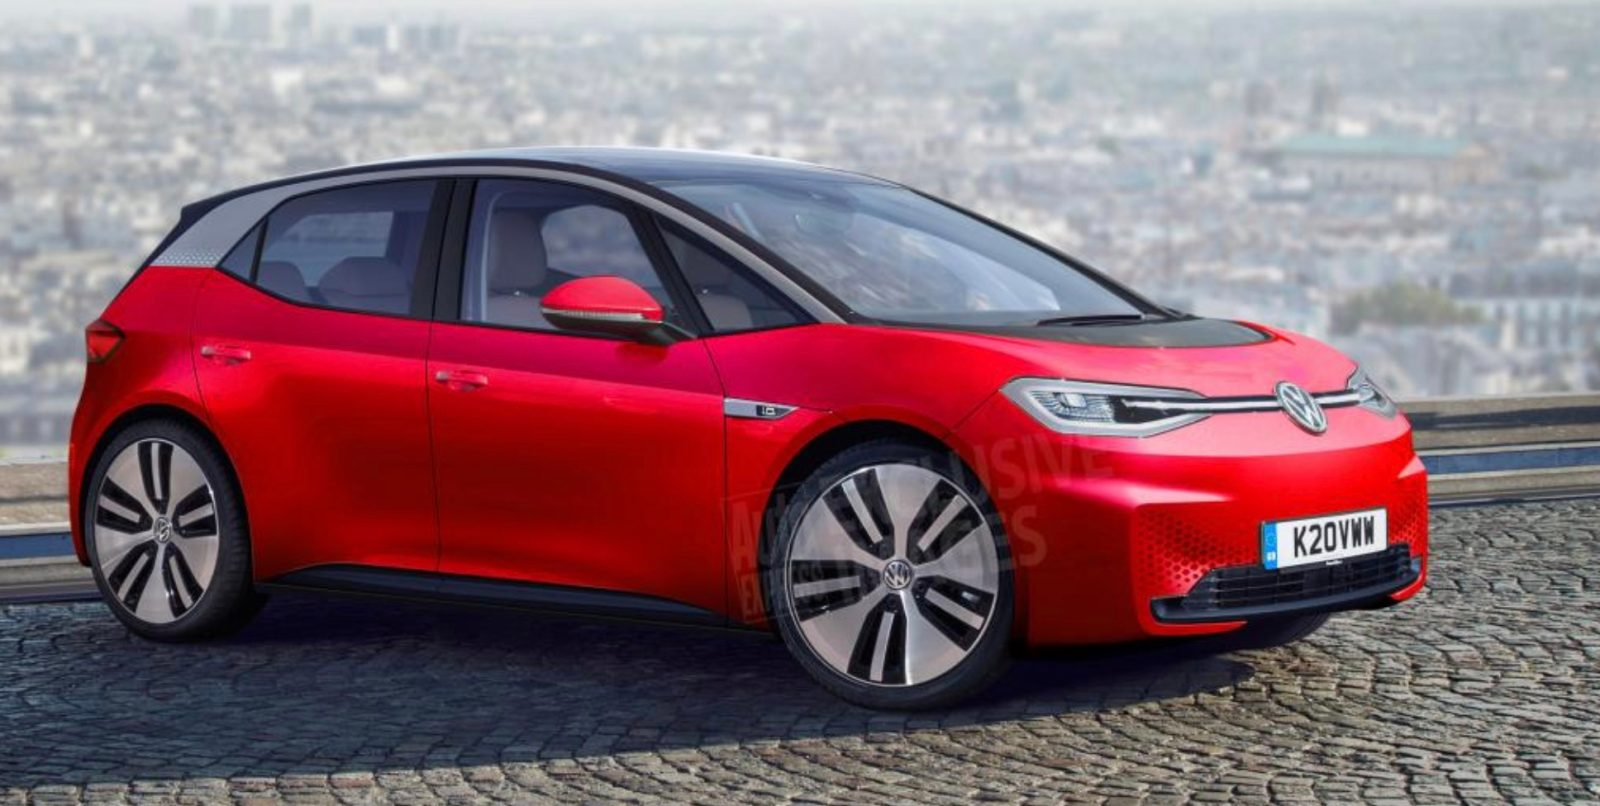 VW's 'affordable' Electric Car To Be Offered In 3 Battery